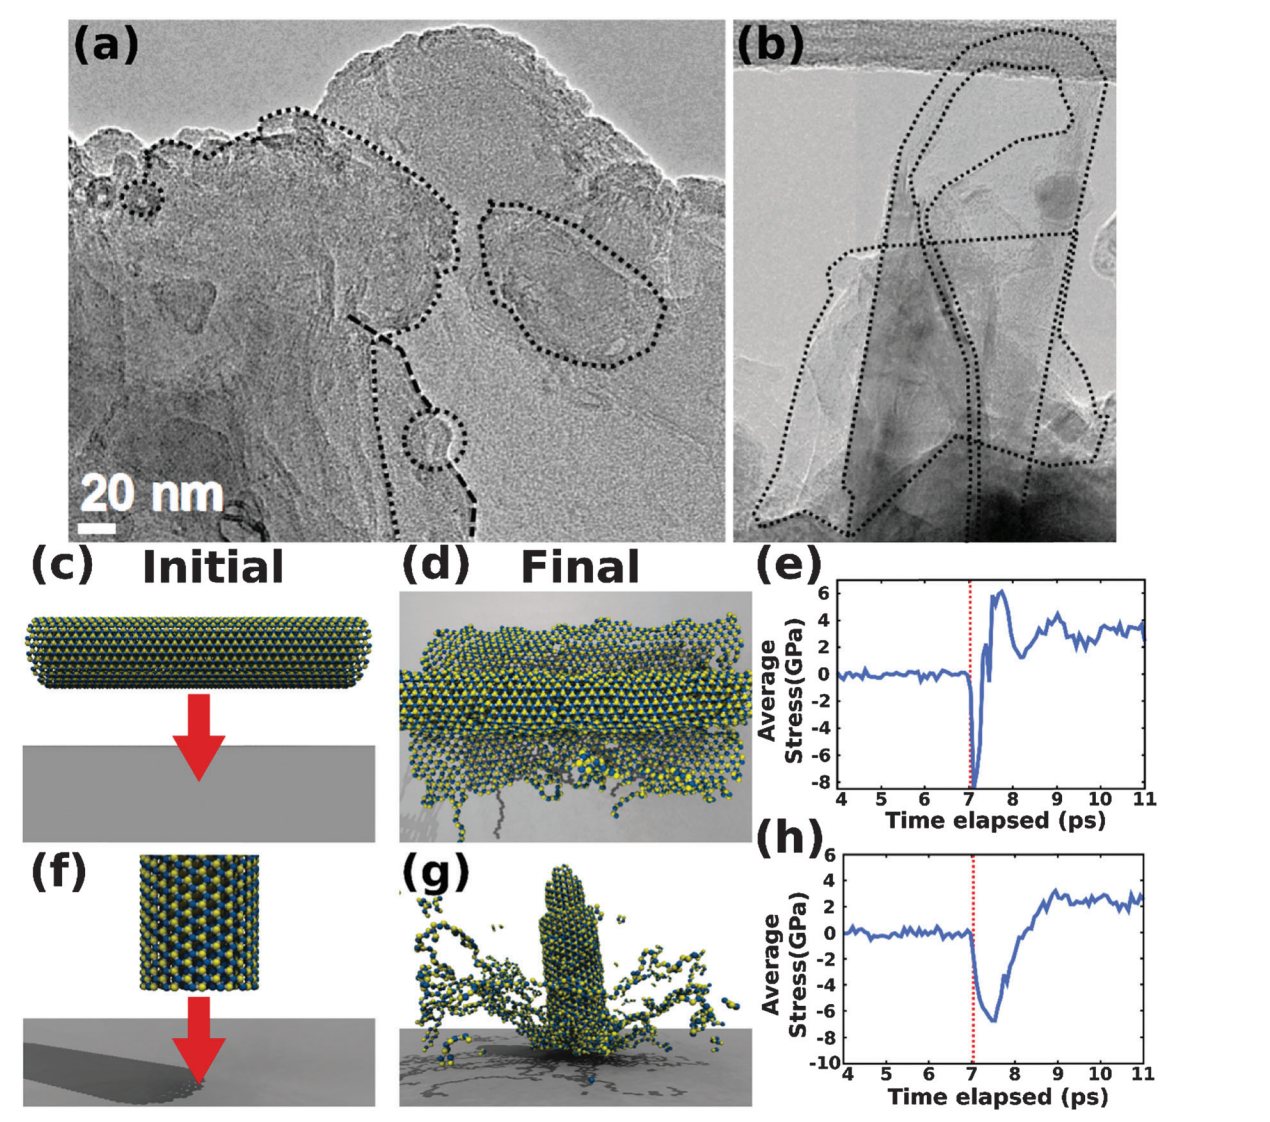 The structural and dynamical aspects of boron nitride nanotubes under high velocity impacts